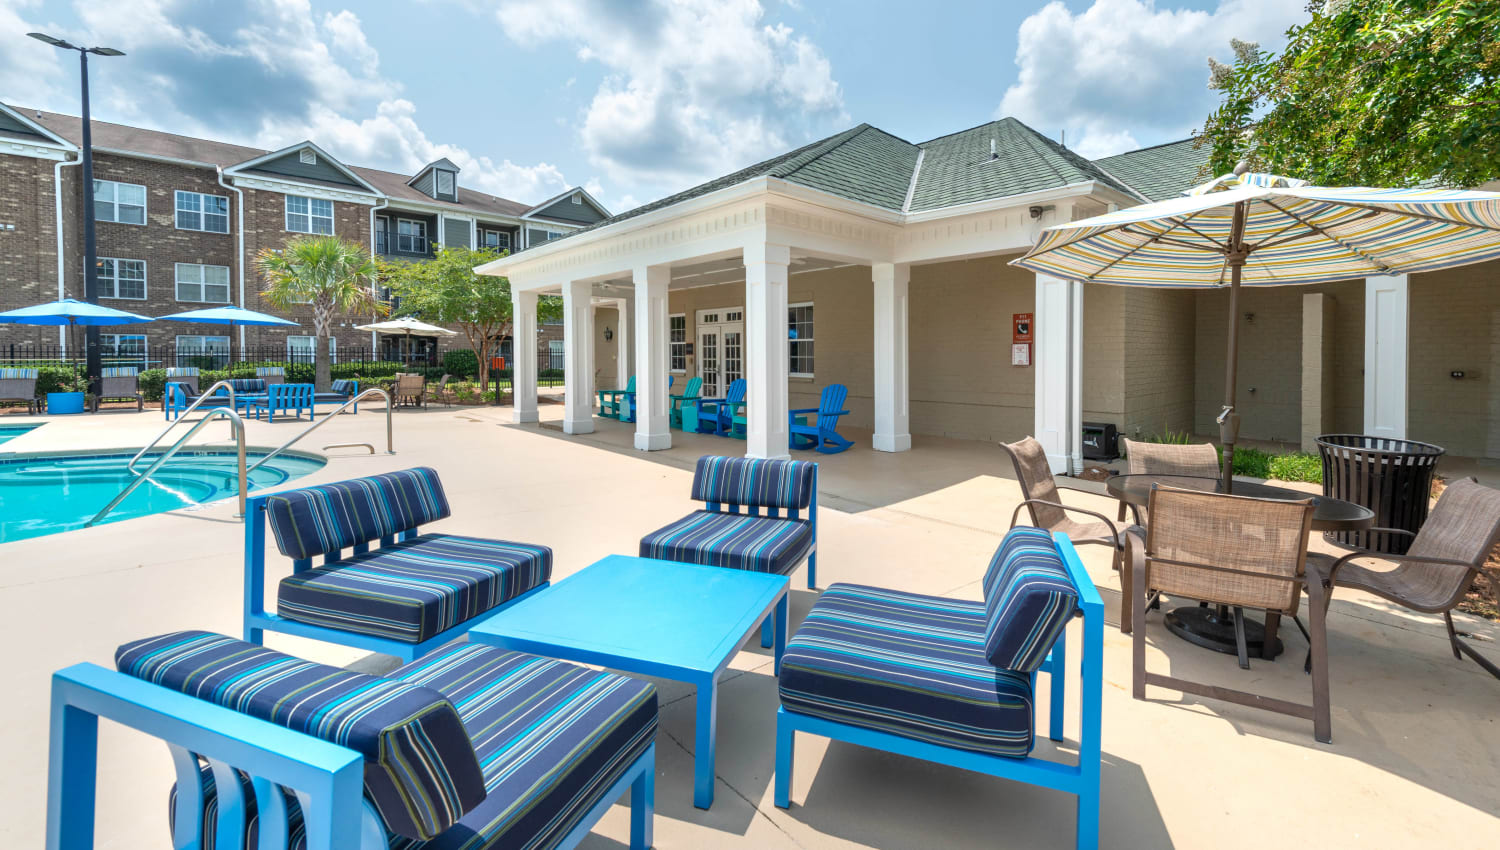 Lounge area next to the pool at Olympus Carrington in Pooler, Georgia